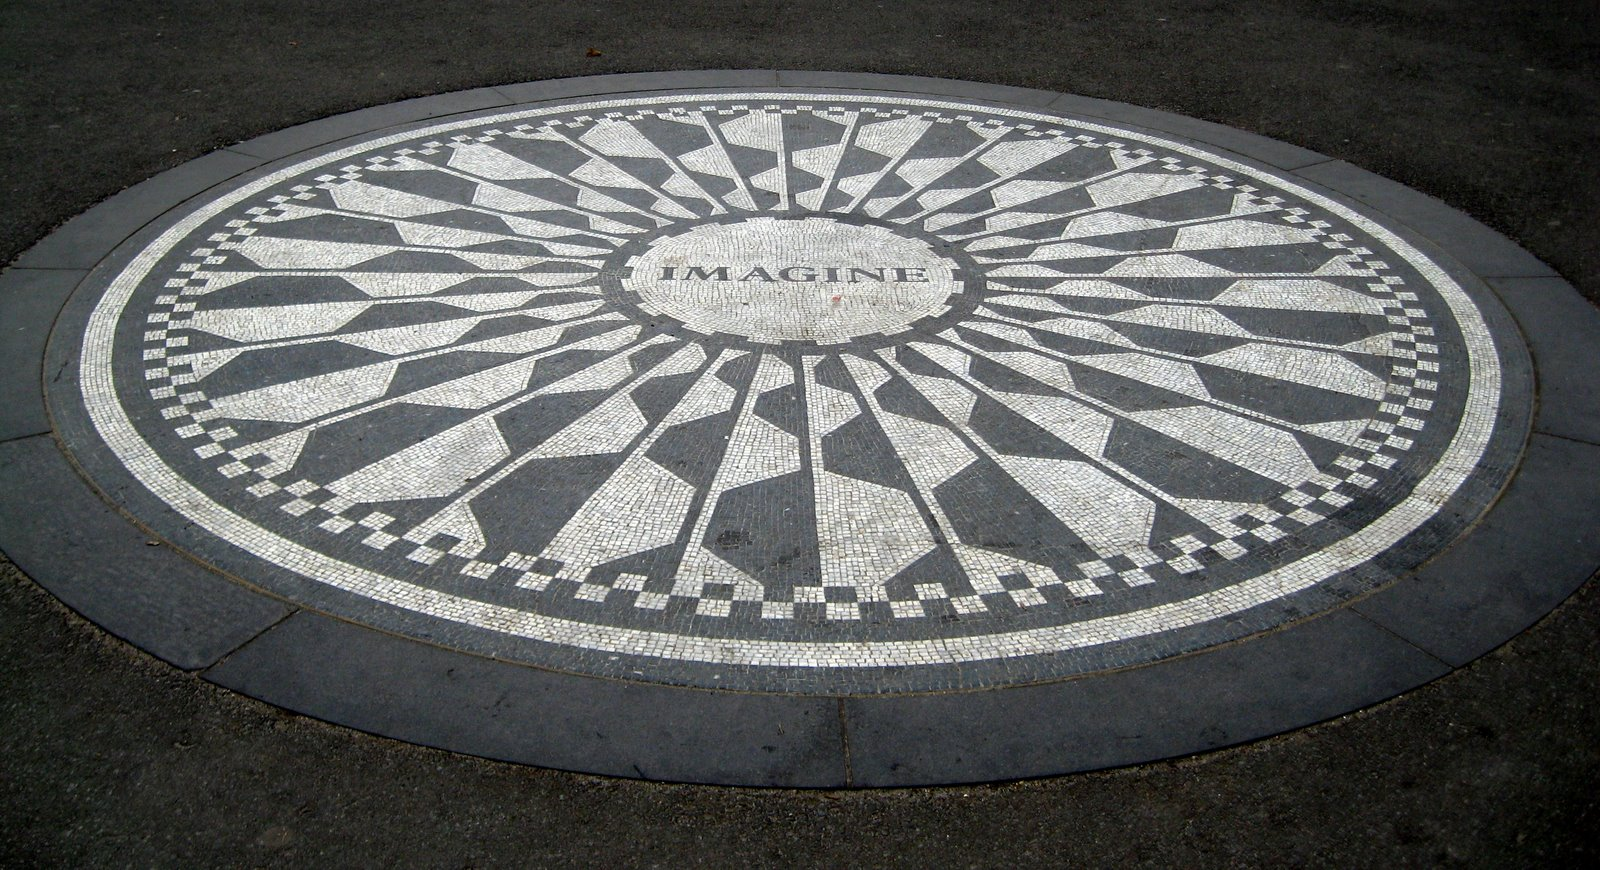 Imagine Memorial Strawberry Fields Central Park